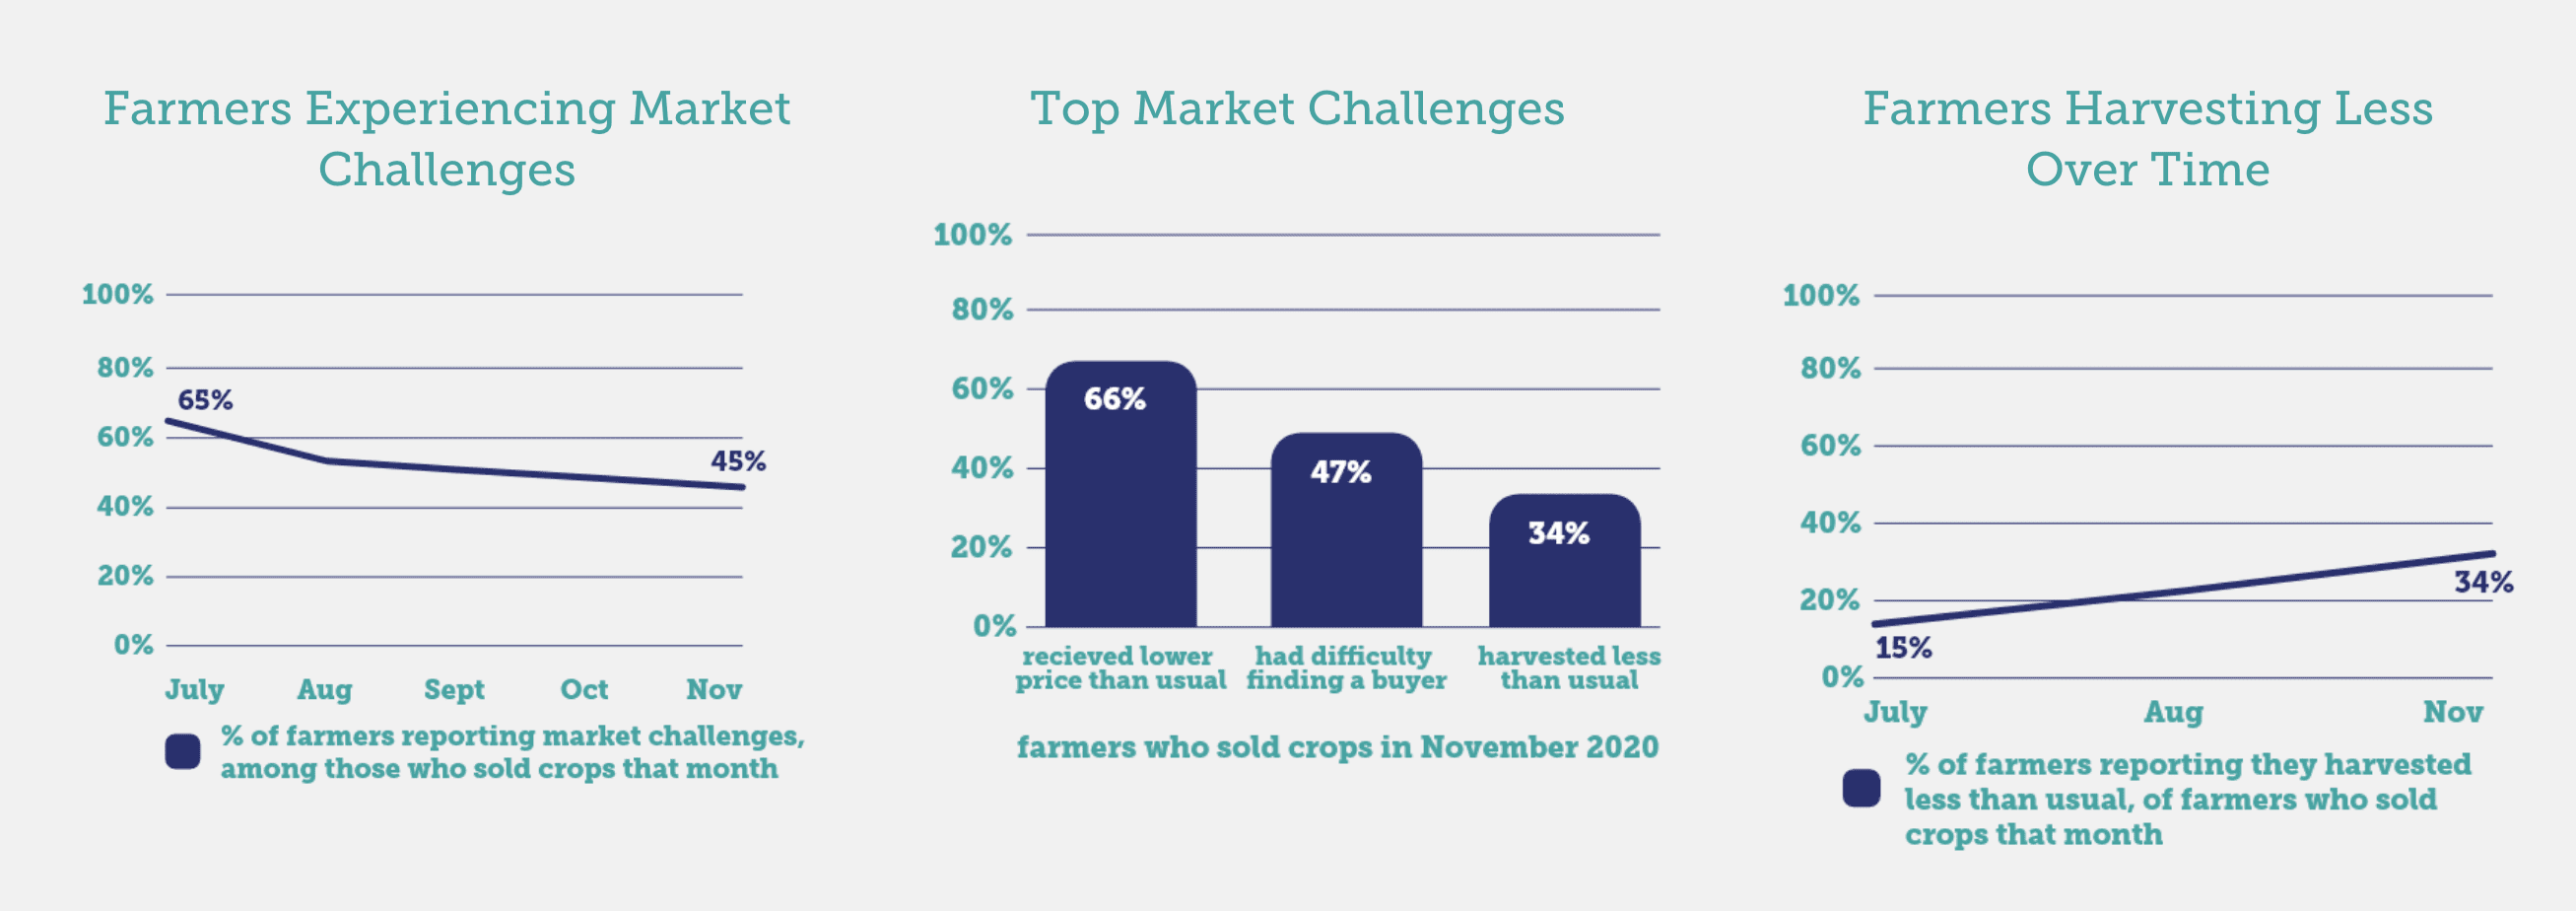 Charts show top market challenges farmers reported during the pandemic.